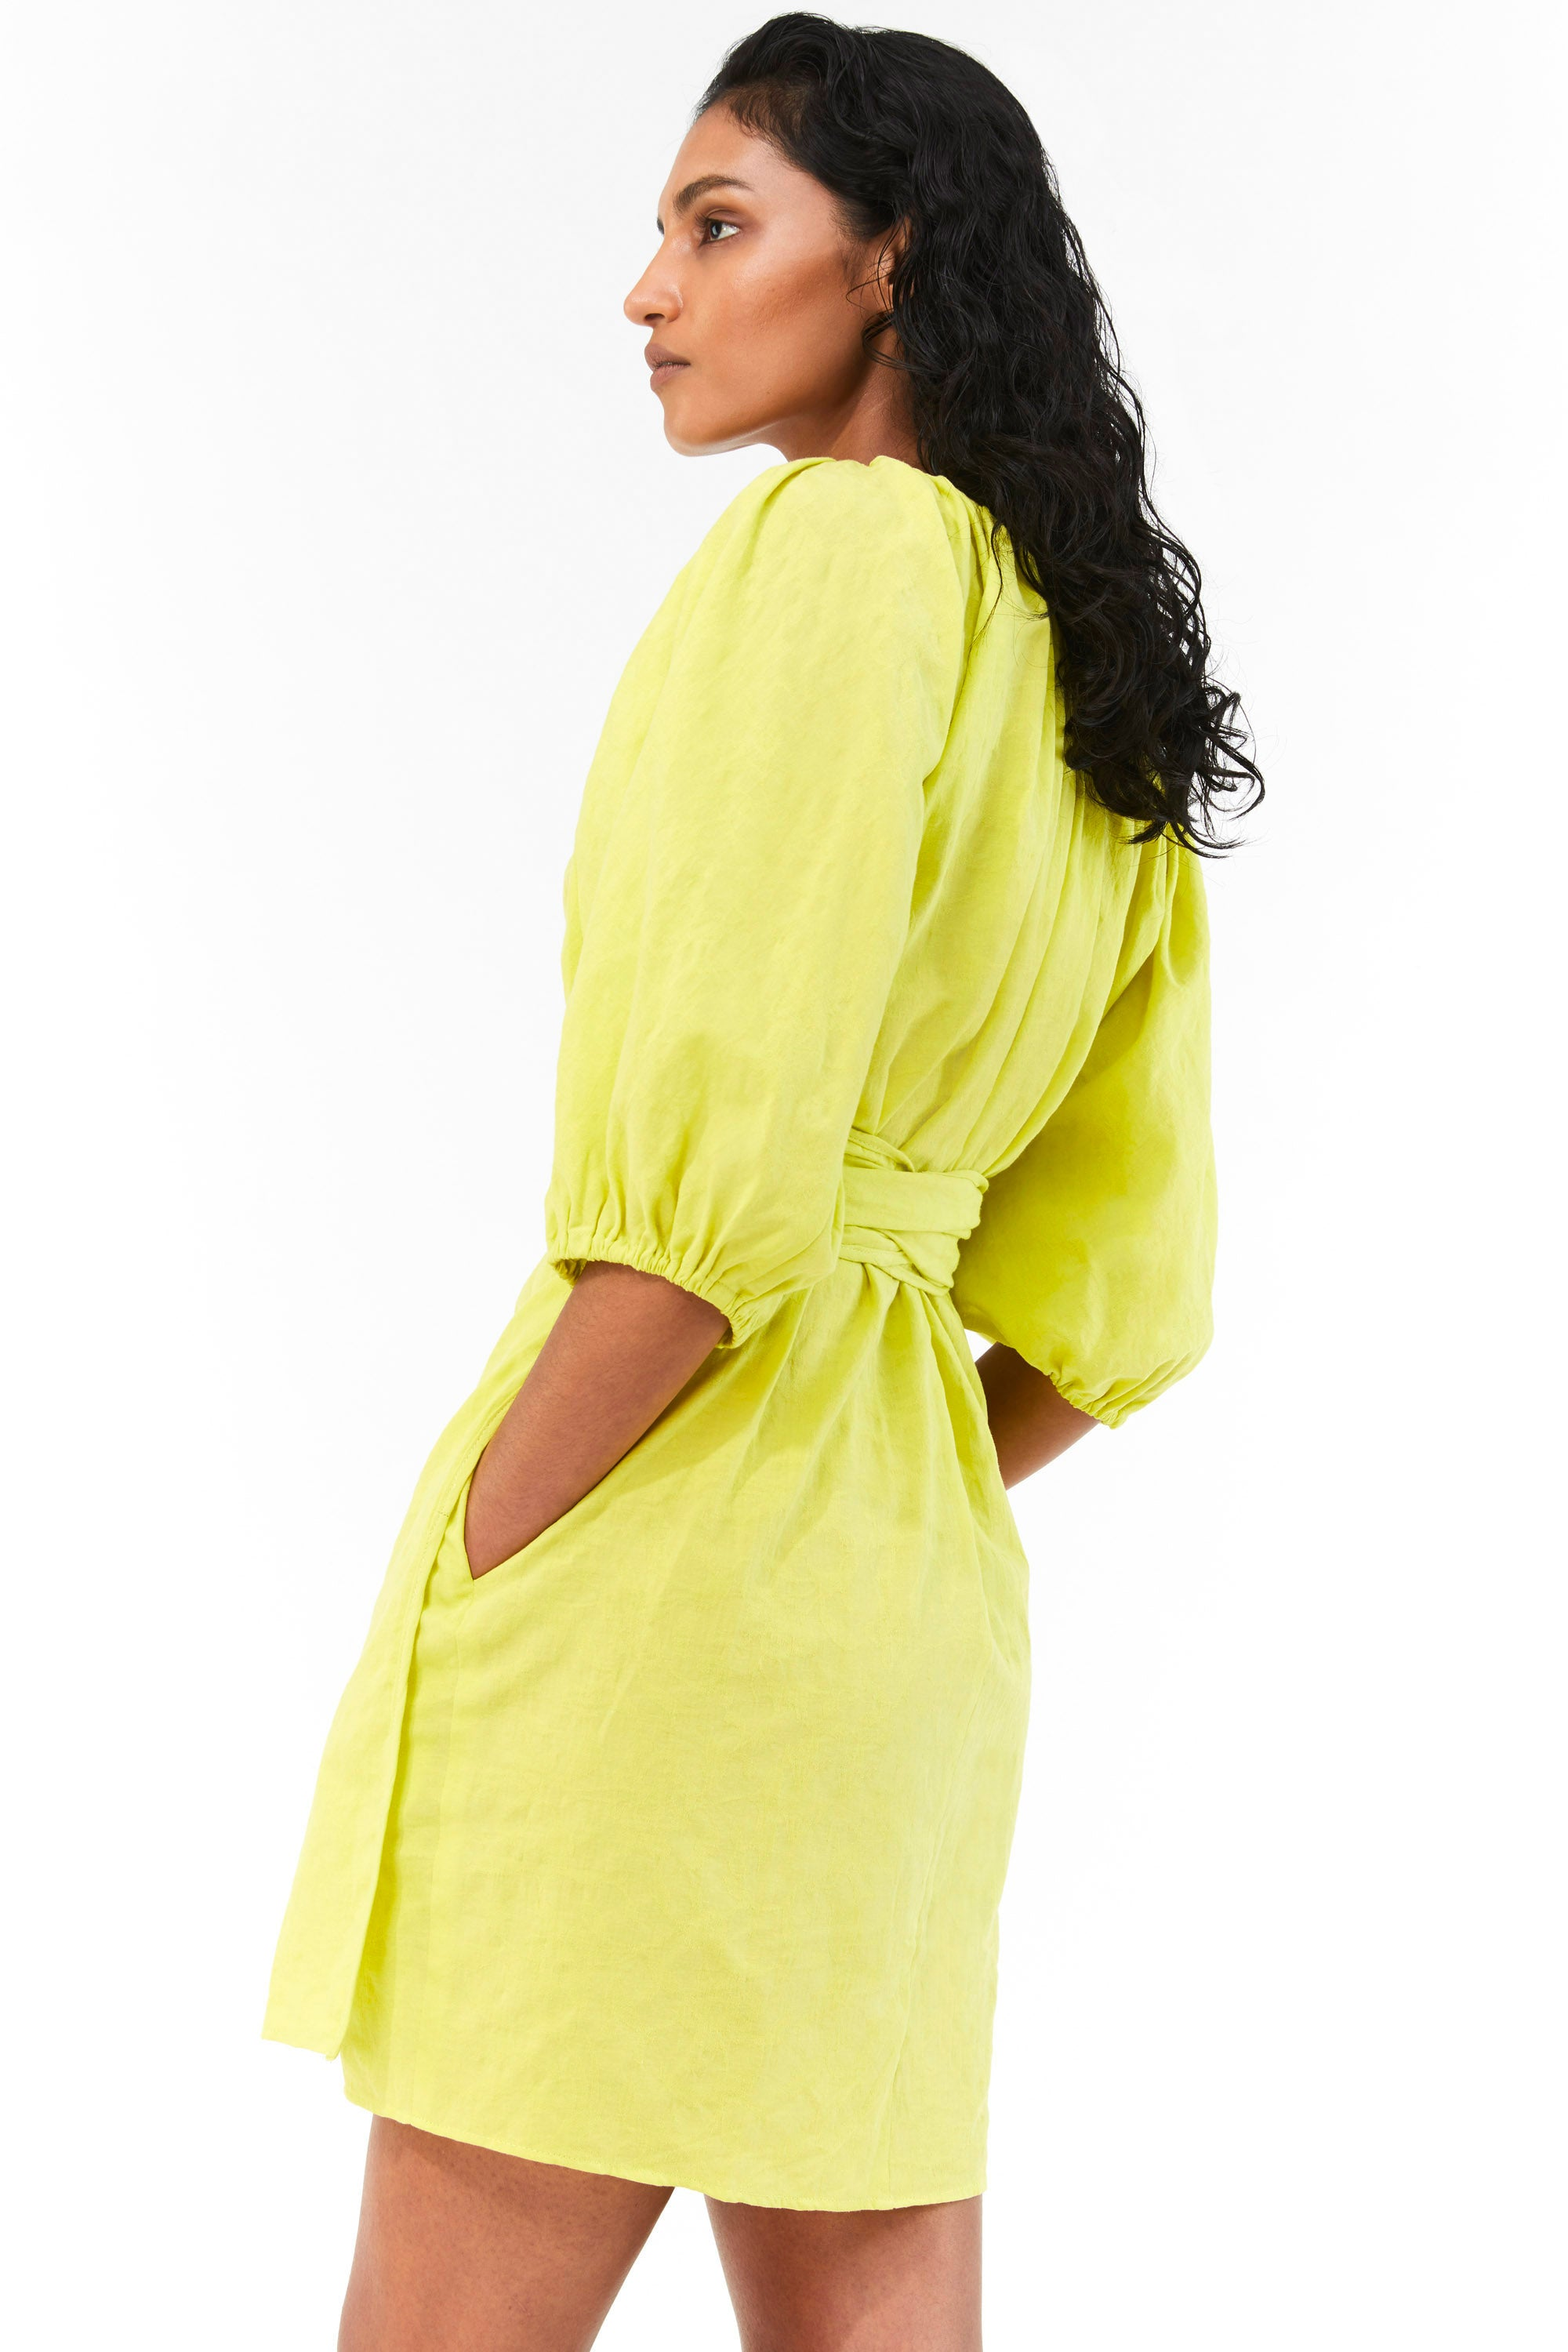 Mara Hoffman Neon Green Coletta Cover Up Dress in organic cotton and linen (back side detail, pocket)